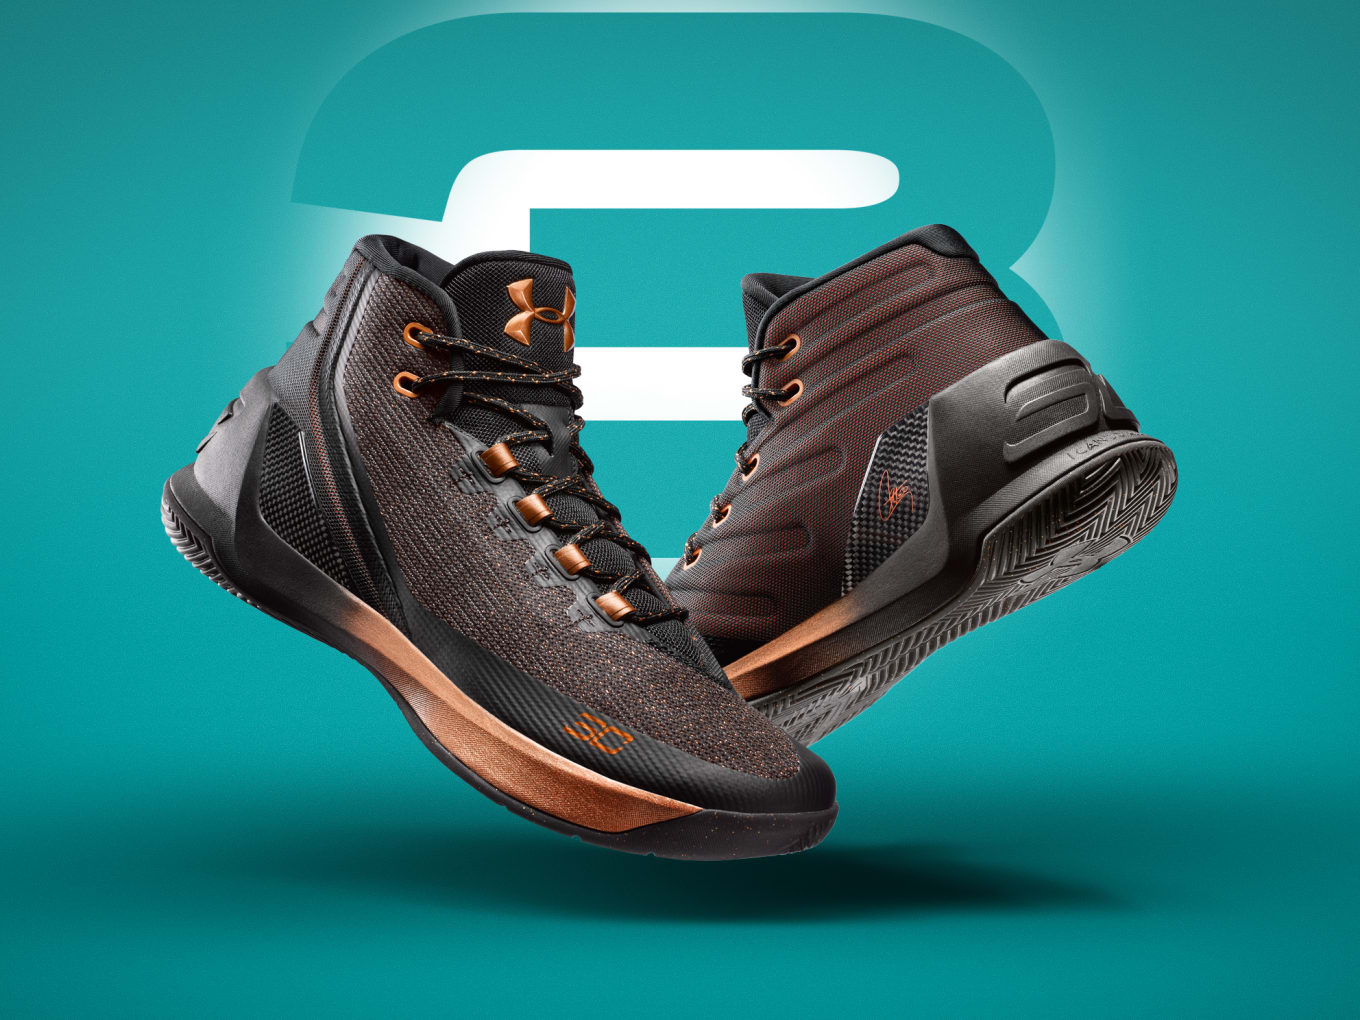 bf1ea7cf203 Under Armour Curry 3s in high and low top.